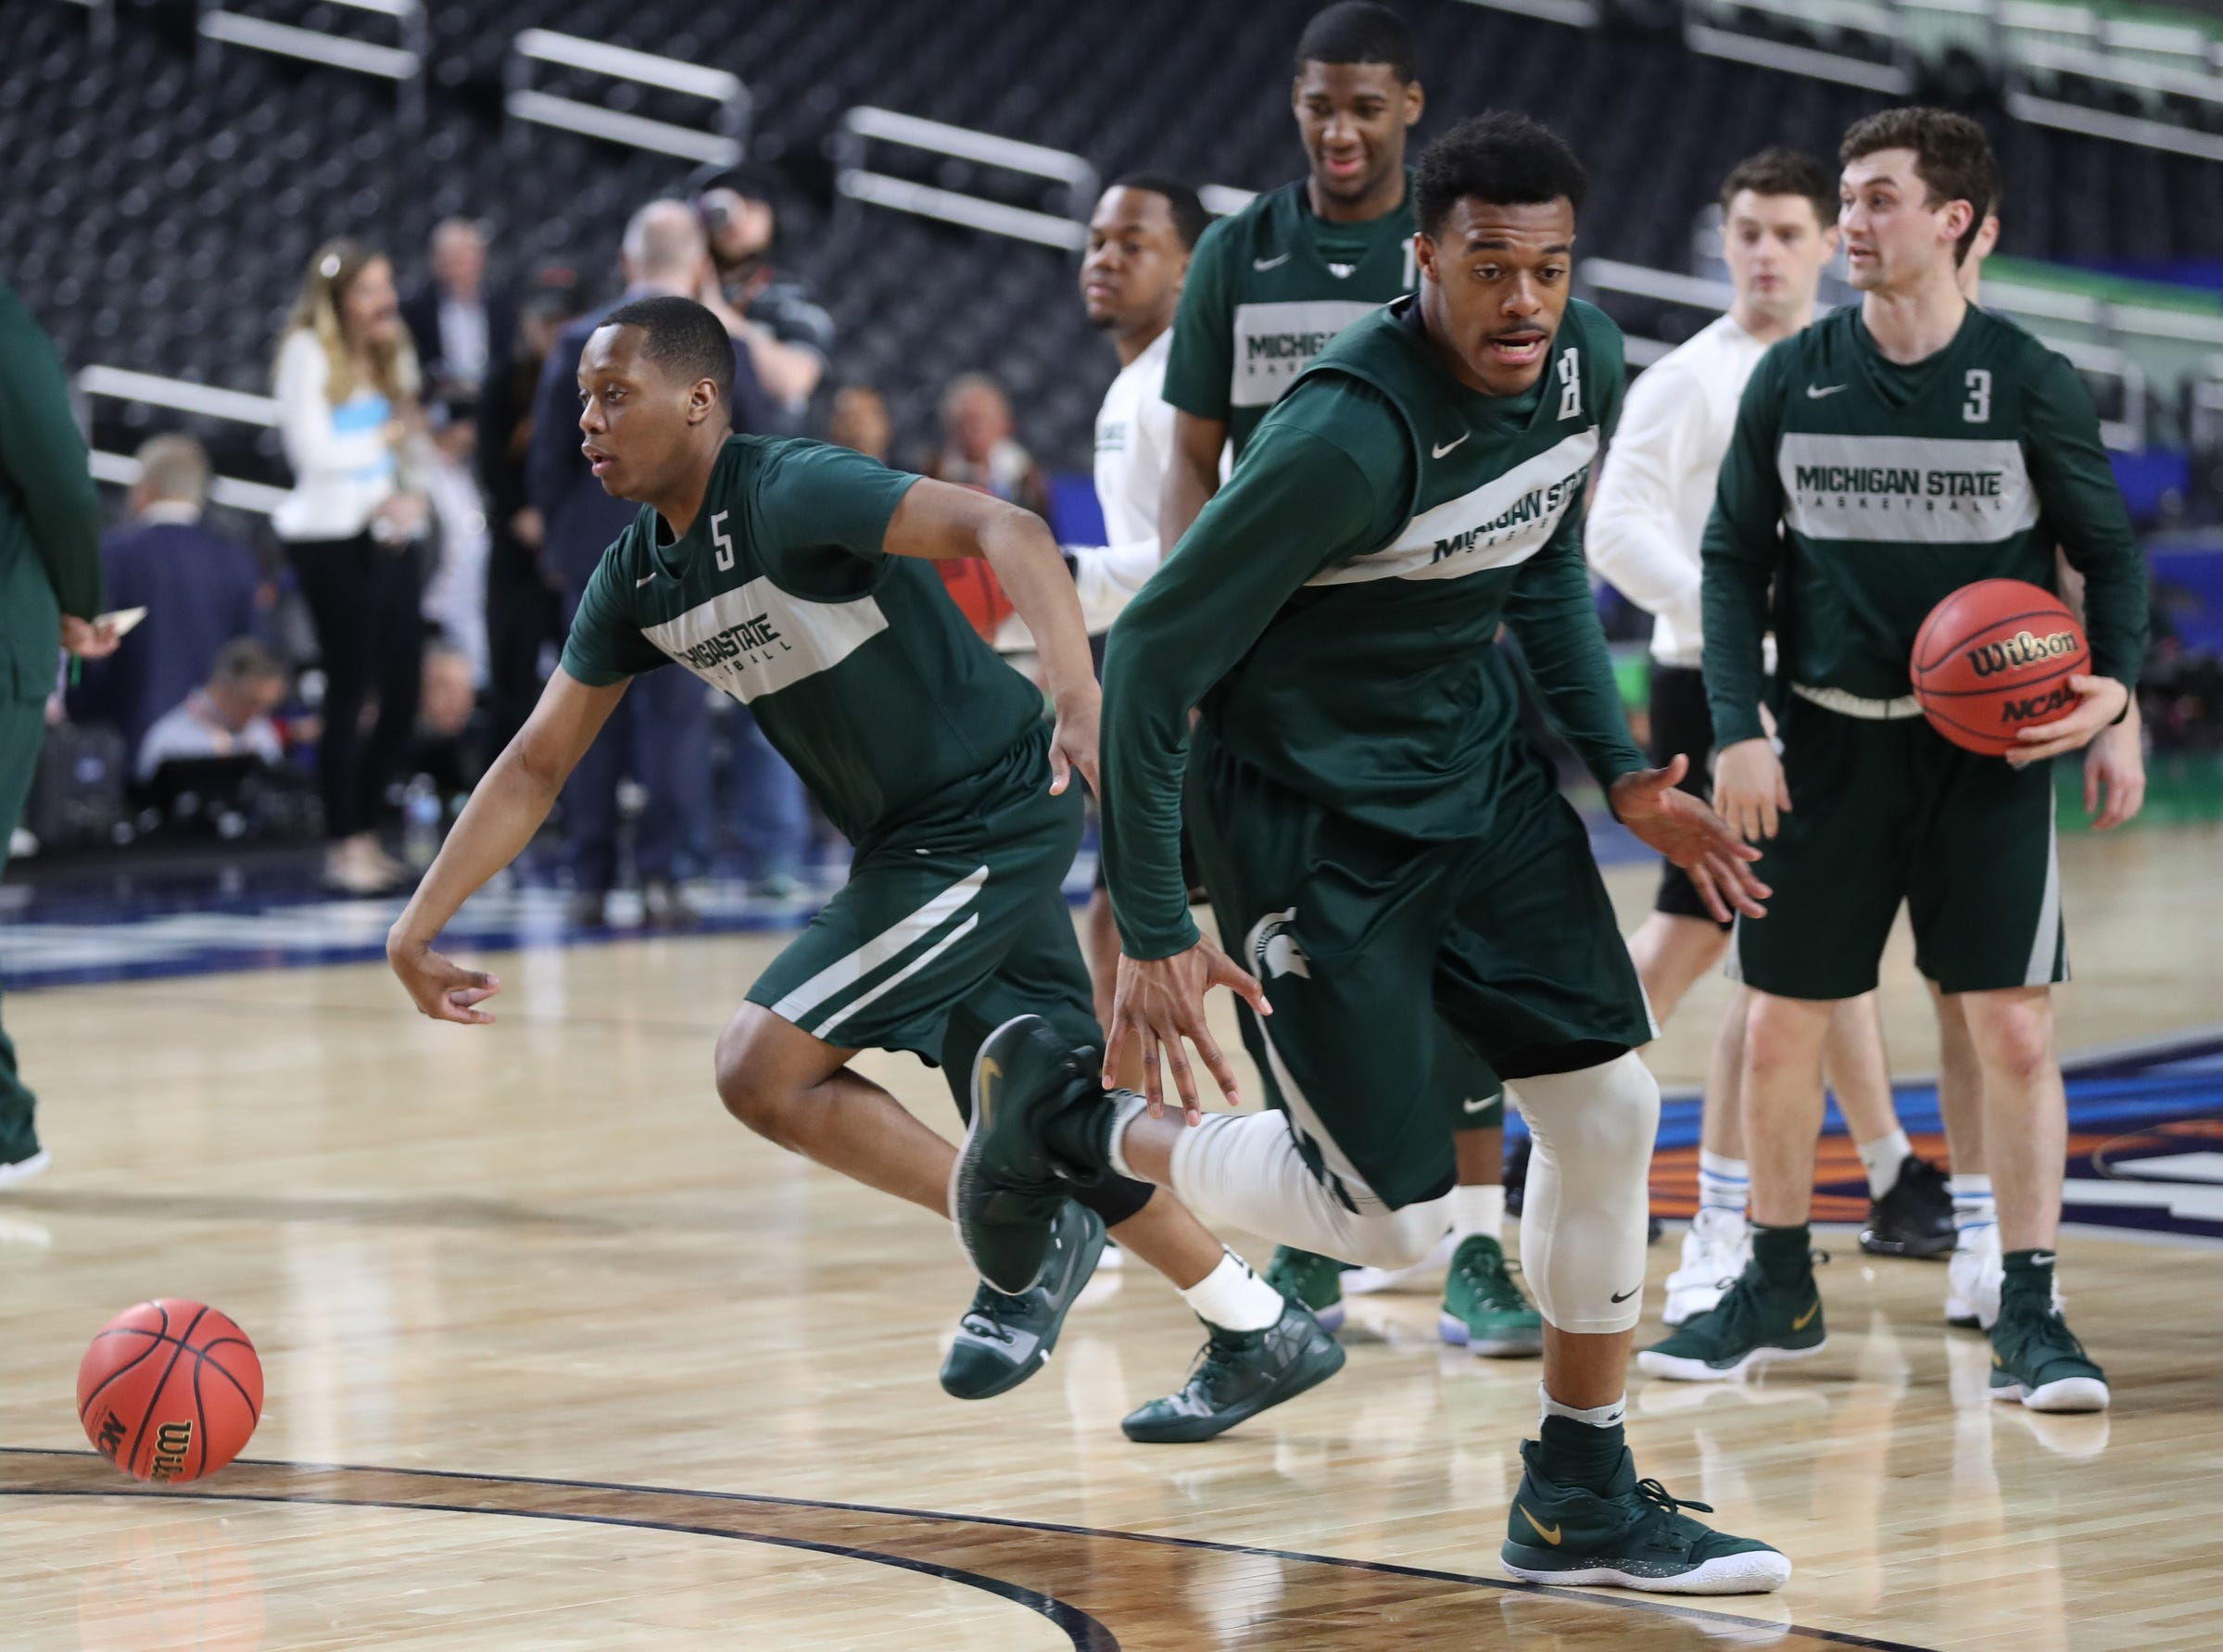 Michigan State's Cassius Winston and Xavier Tillman goes through drills during practice for their NCAA semifinal game against Texas Tech Friday, April 5, 2019 at U.S. Bank Stadium in Minneapolis, Minn.